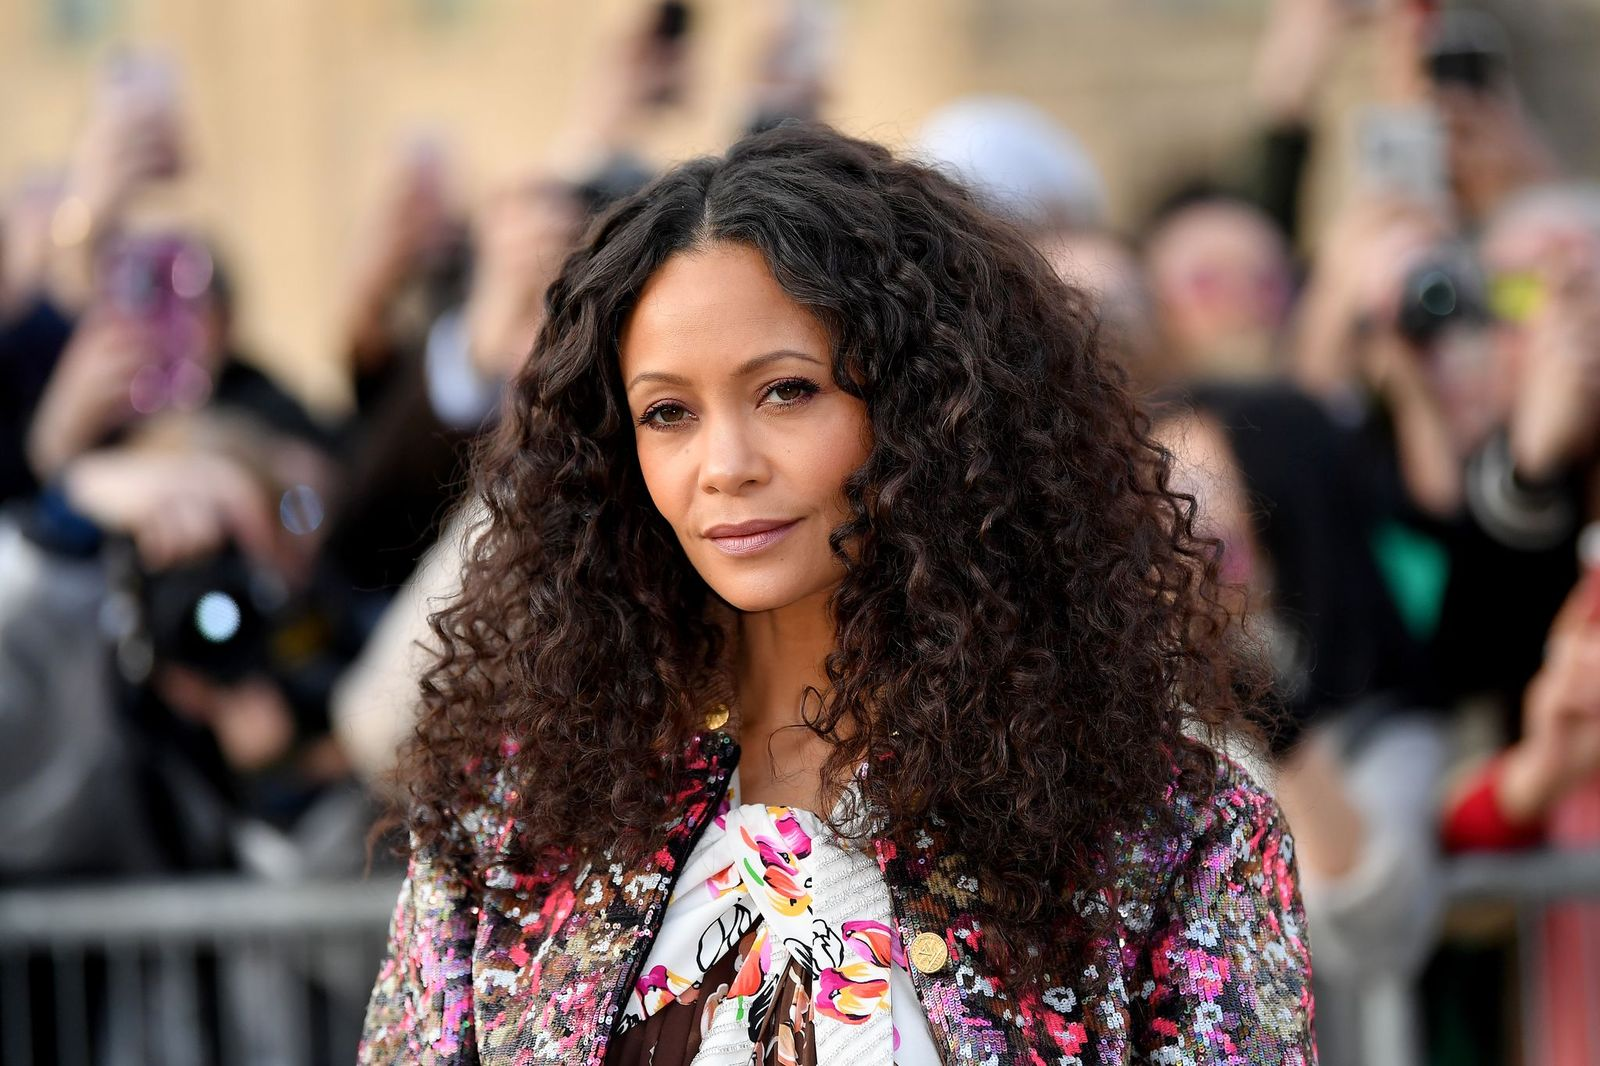 Thandie Newton at the Louis Vuitton show as part of Paris Fashion Week Womenswear Fall/Winter 2019/2020 on March 05, 2019 in Paris, France. | Photo: Getty Images